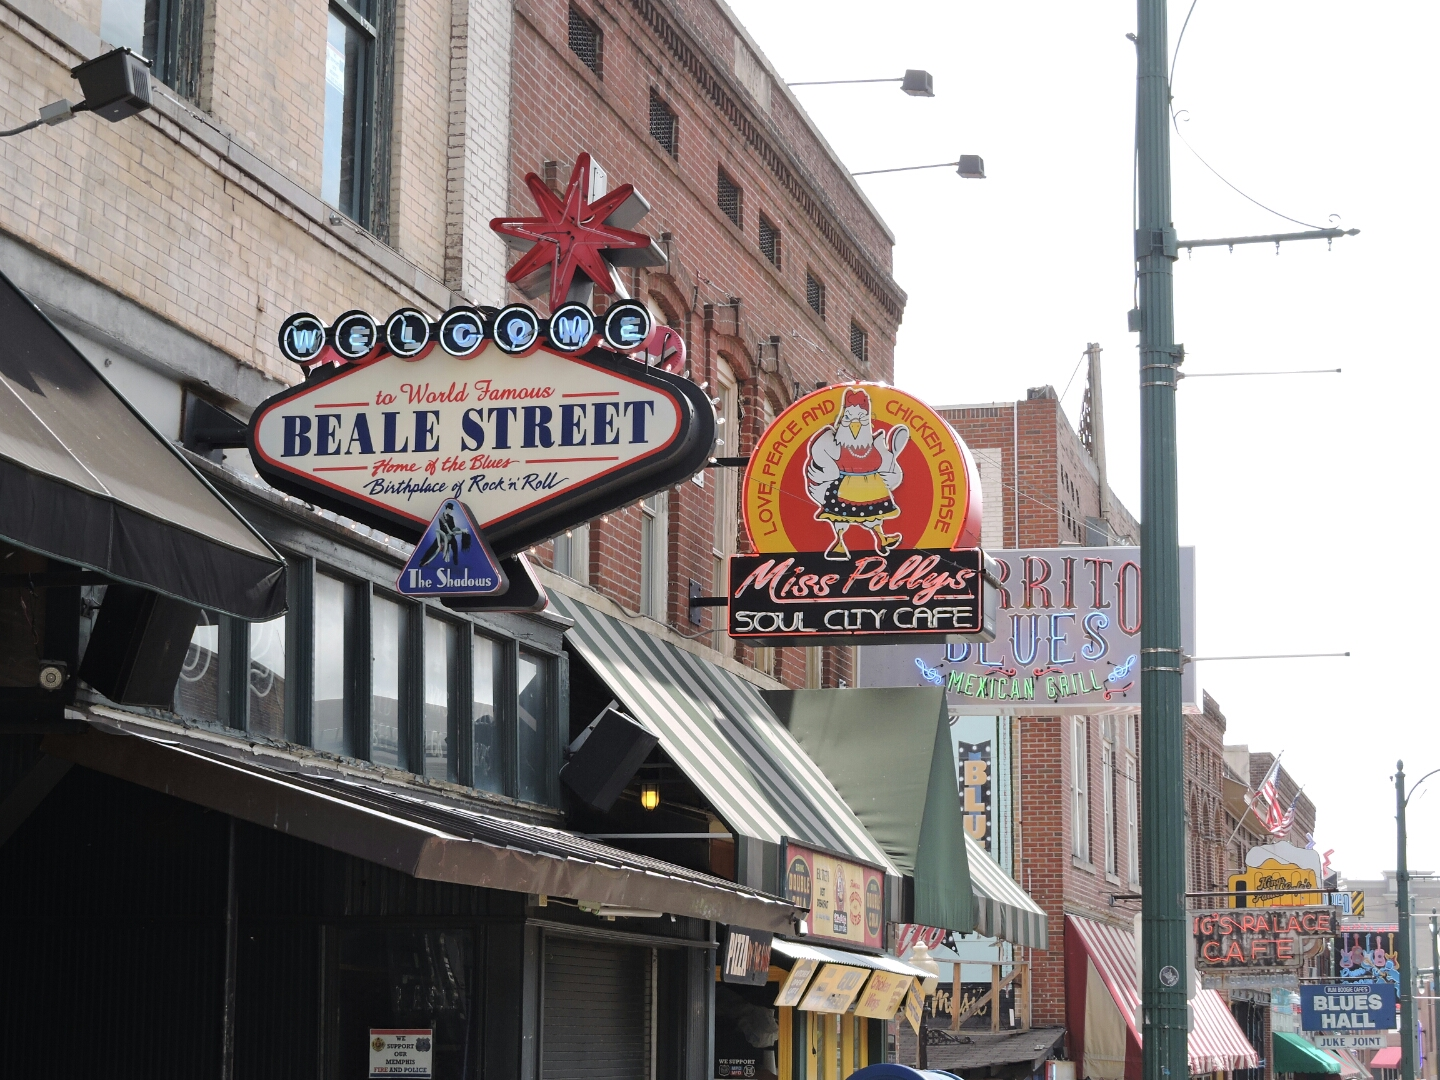 Memphis, Tennessee Beale Street